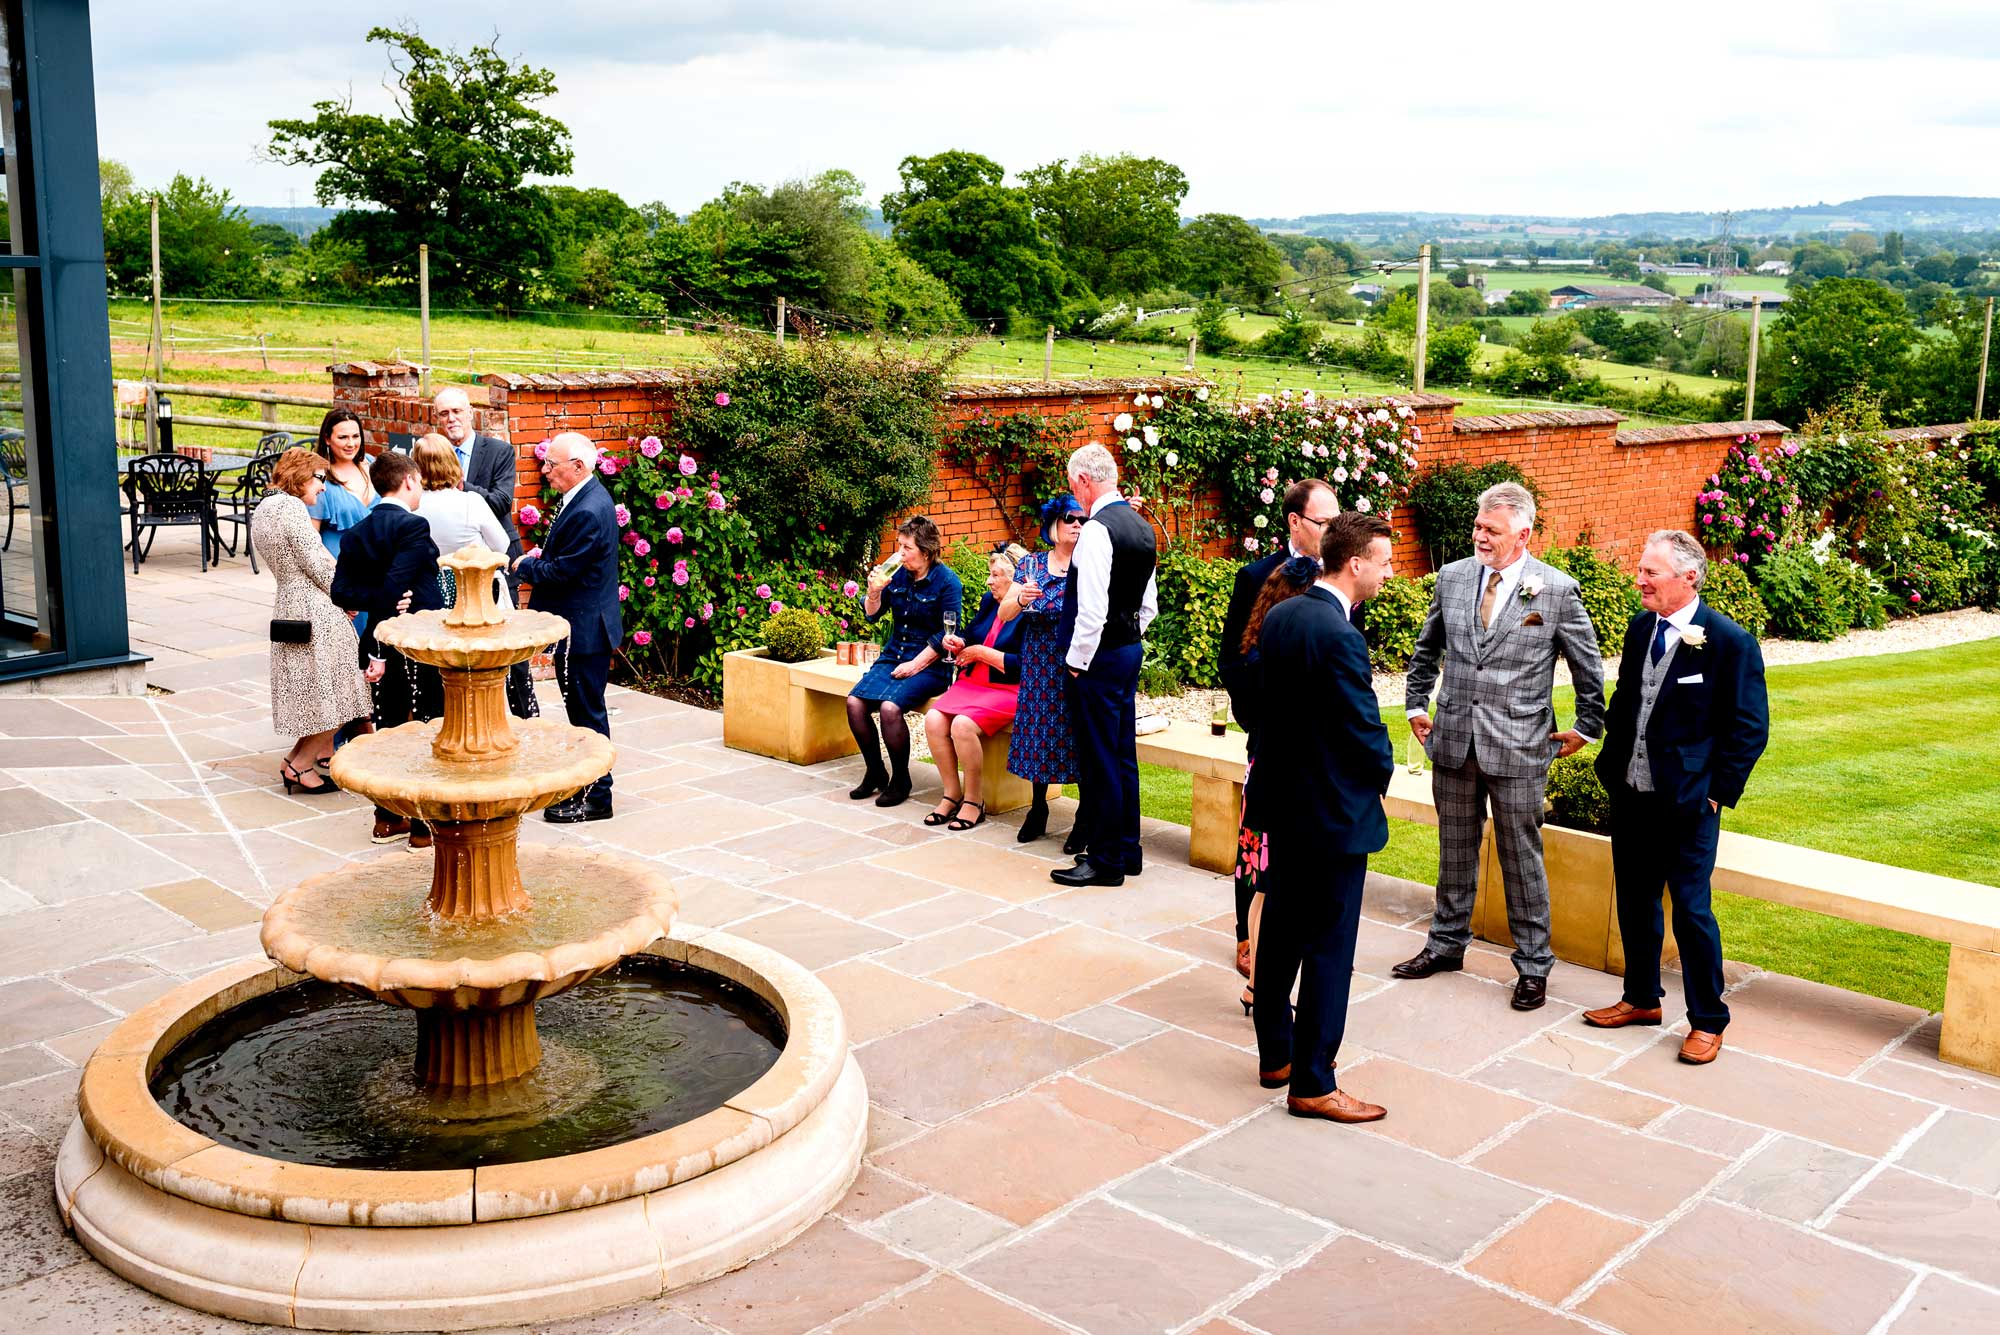 Guests mingle in the Walled Garden at Upton Barn on the patio by the fountain